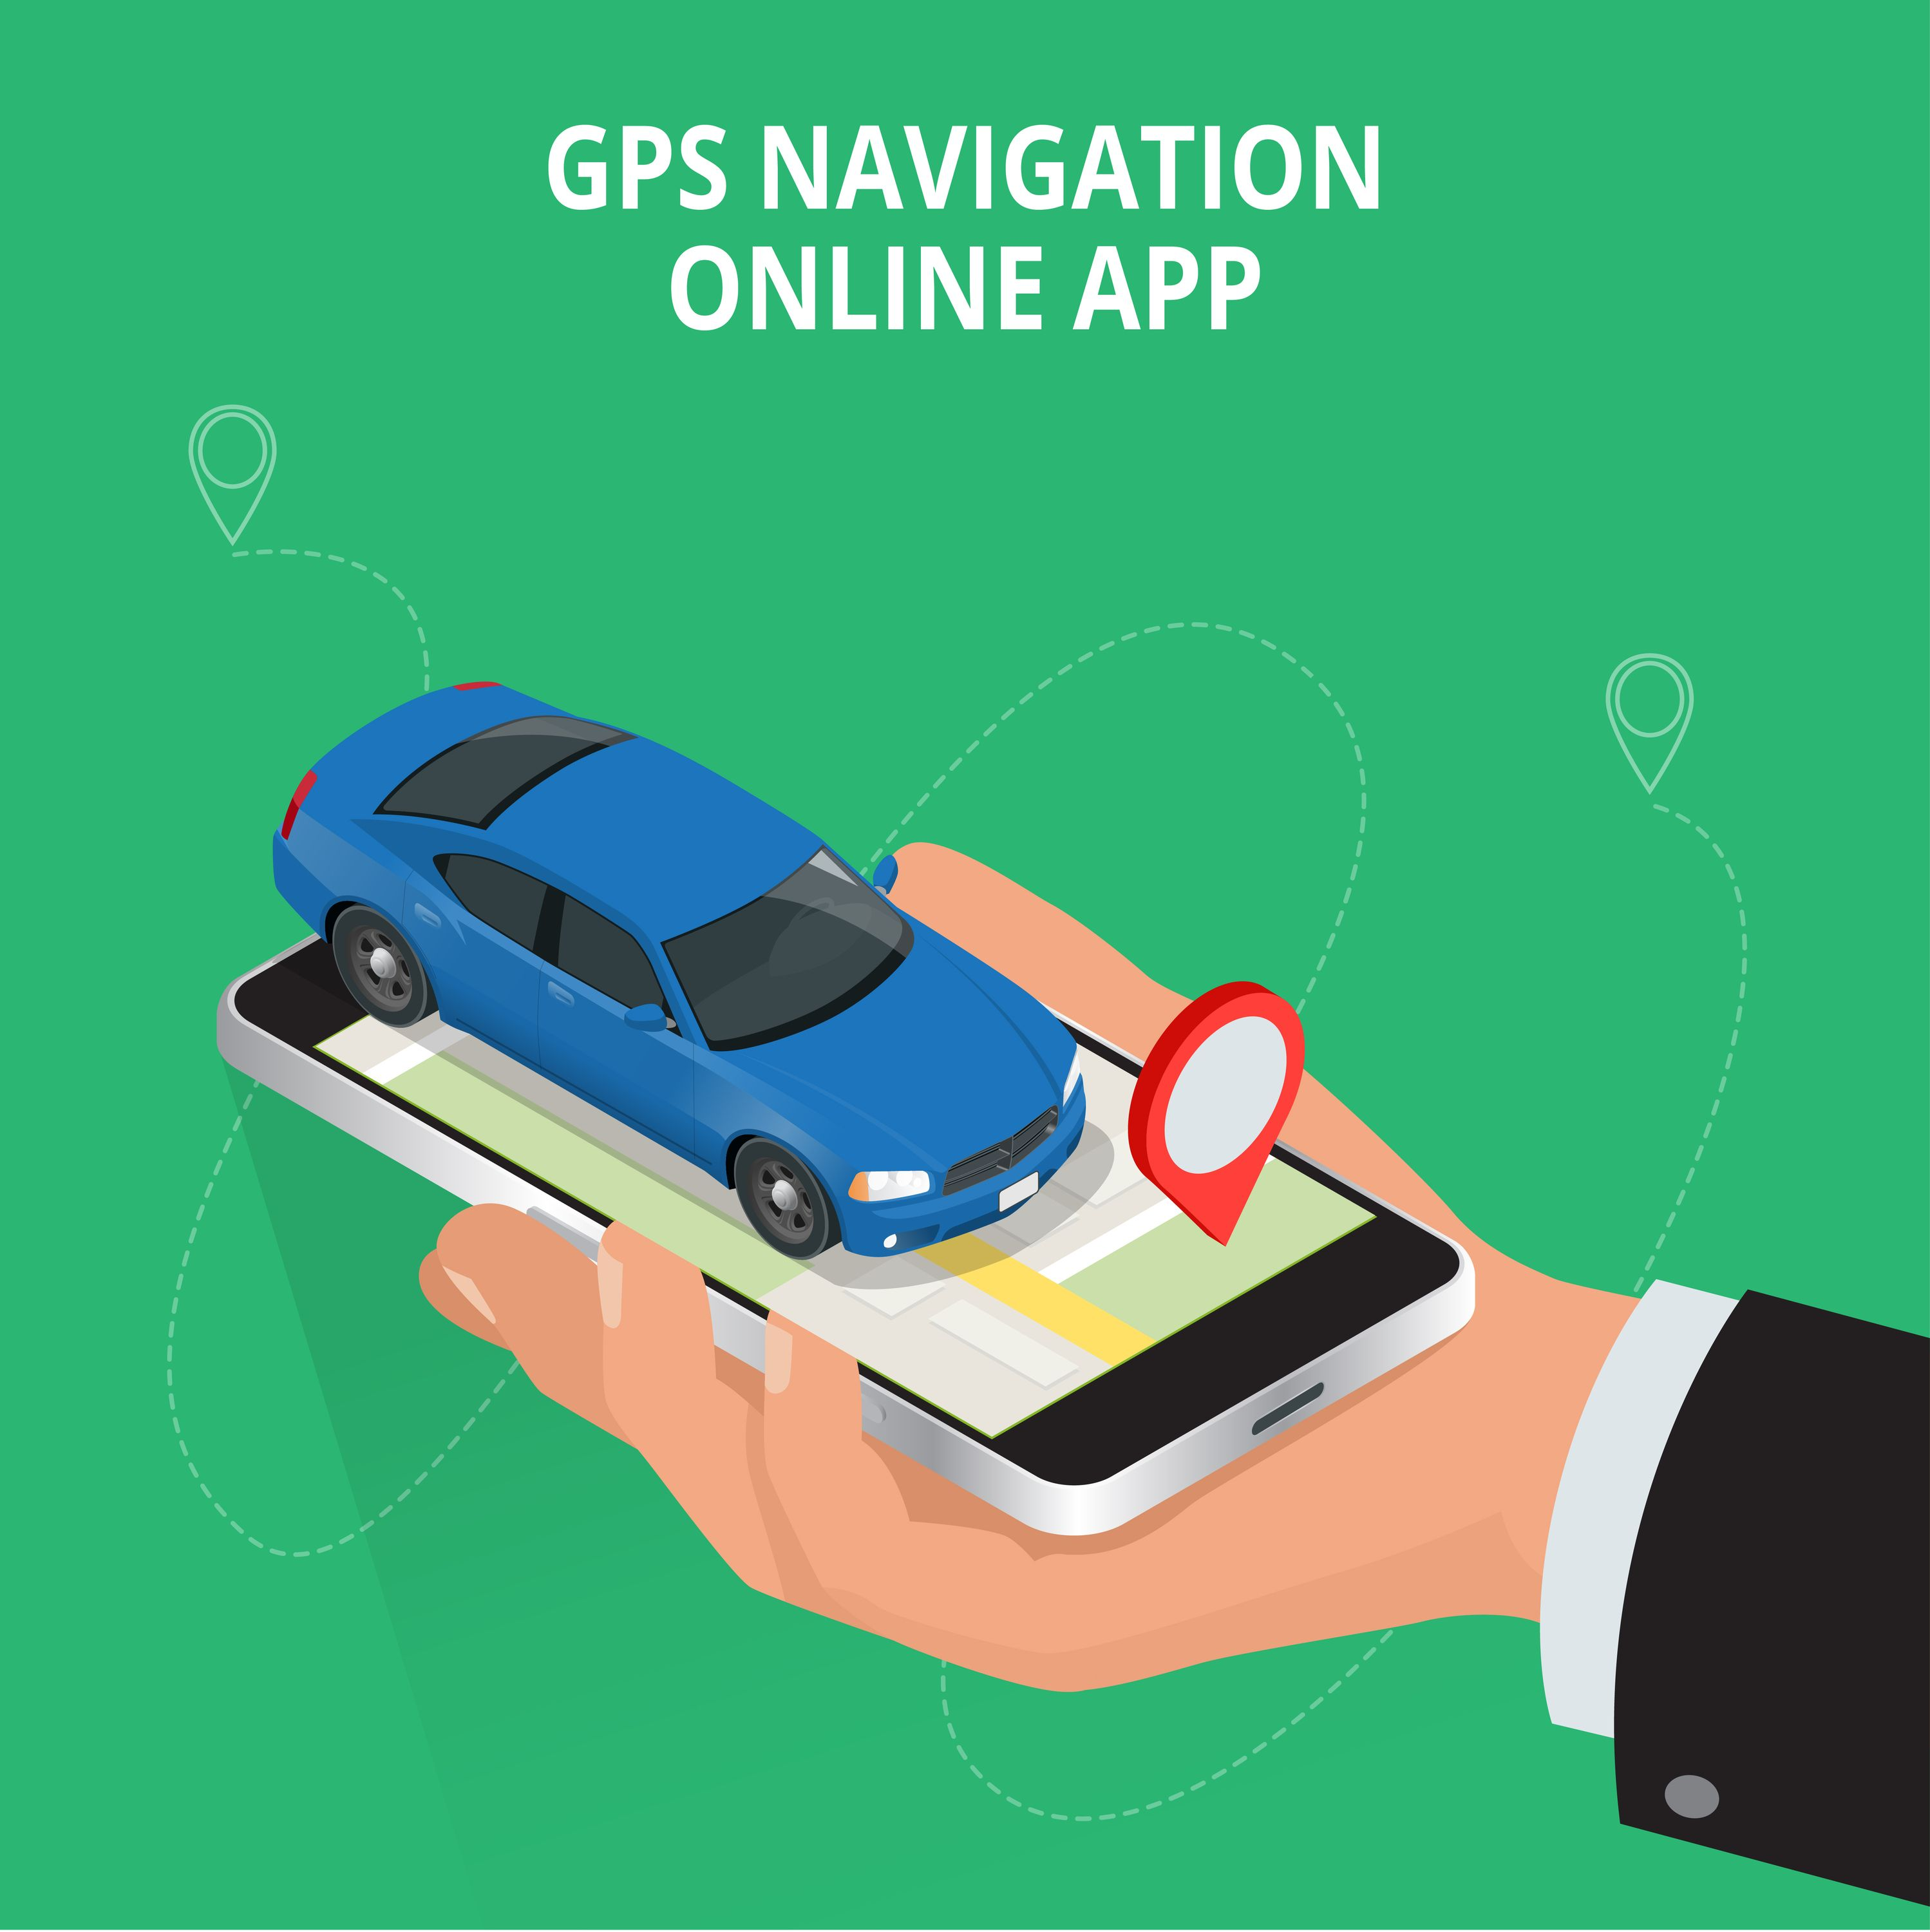 Gps Technology Can Help You Provide Location Based Services Get An Android App With Gps Support Mobile App Development Companies Gps Navigation Navigation